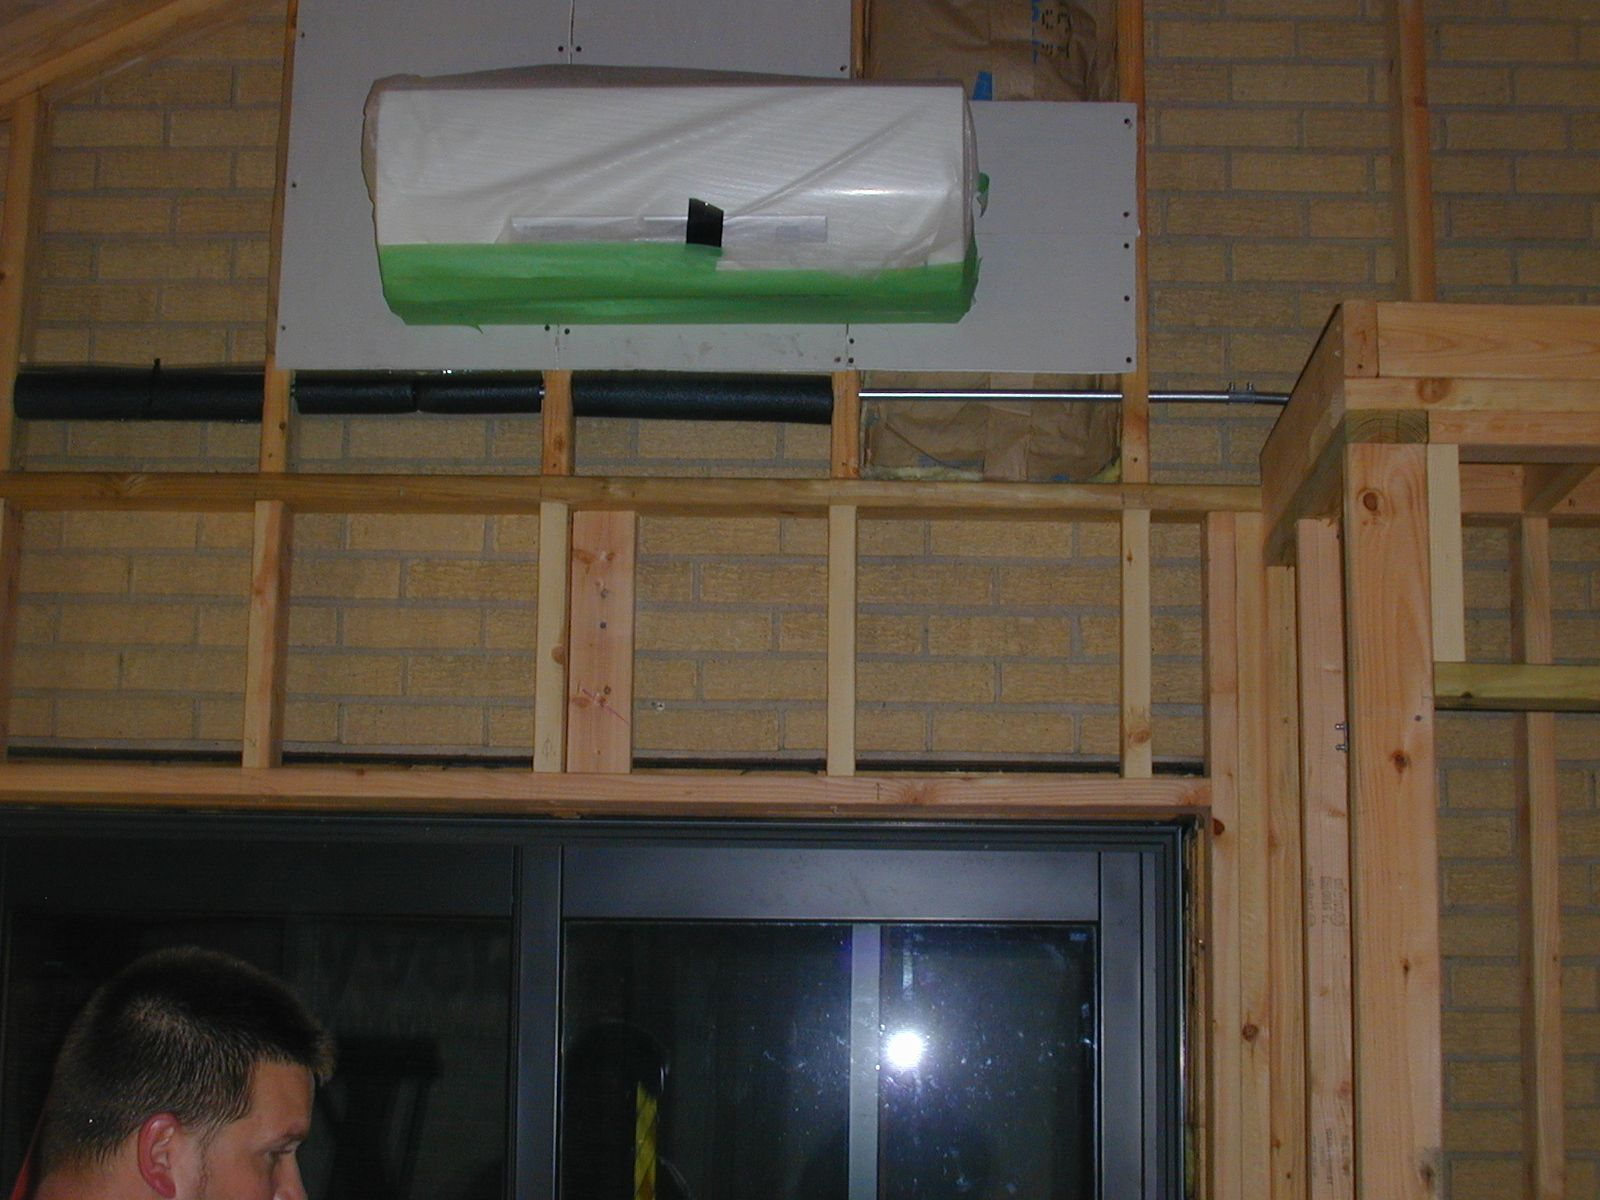 A Ductless Mini Split Is A Type Of Air Source Heat Pump That Can